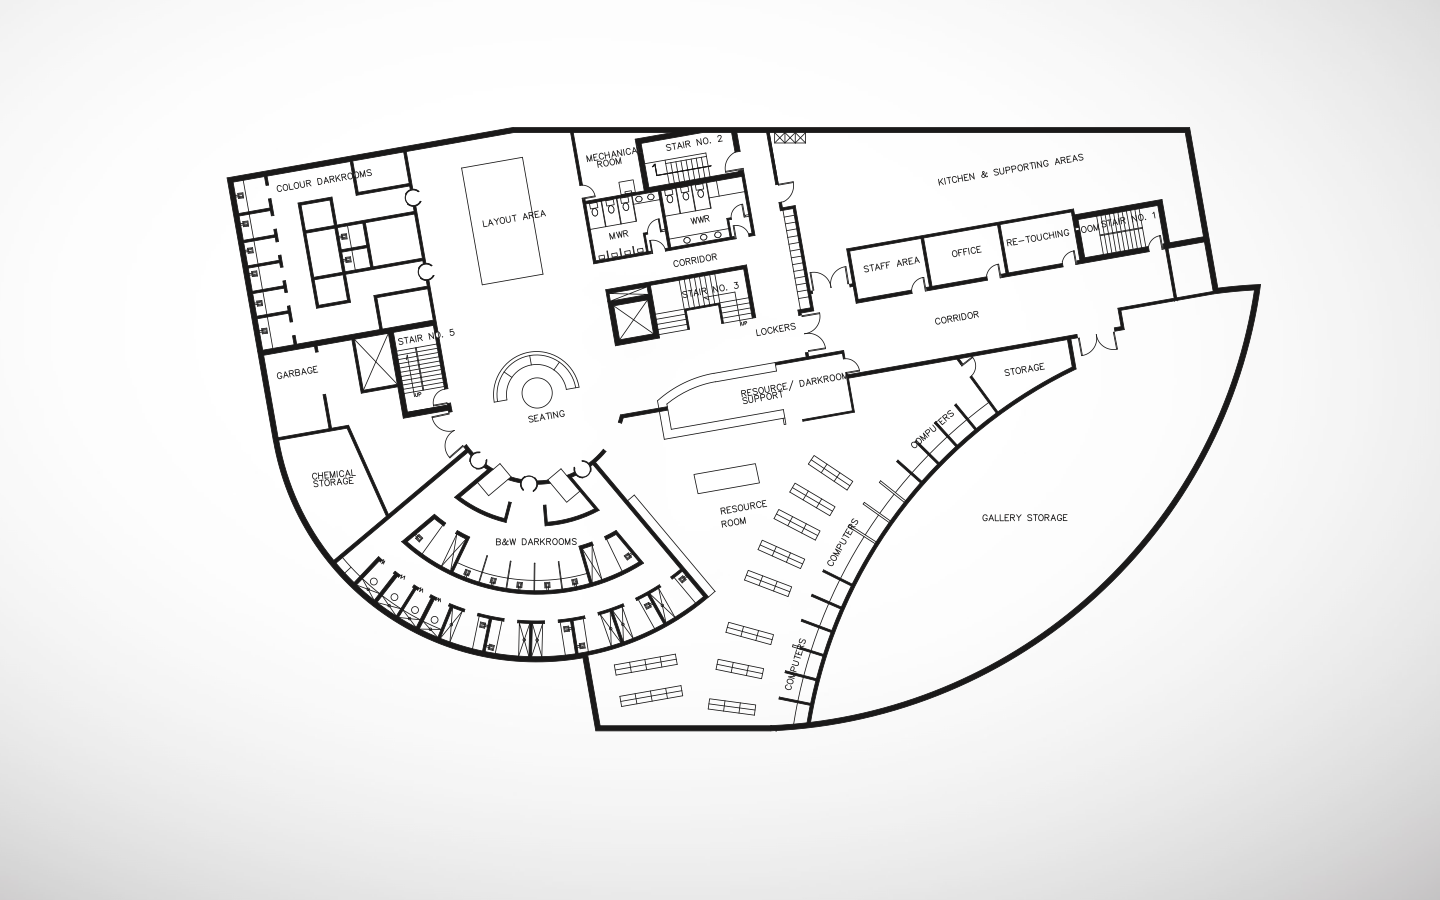 Photographic Arts Center - Basement Floor Plan, by Sanjiv Sirpal